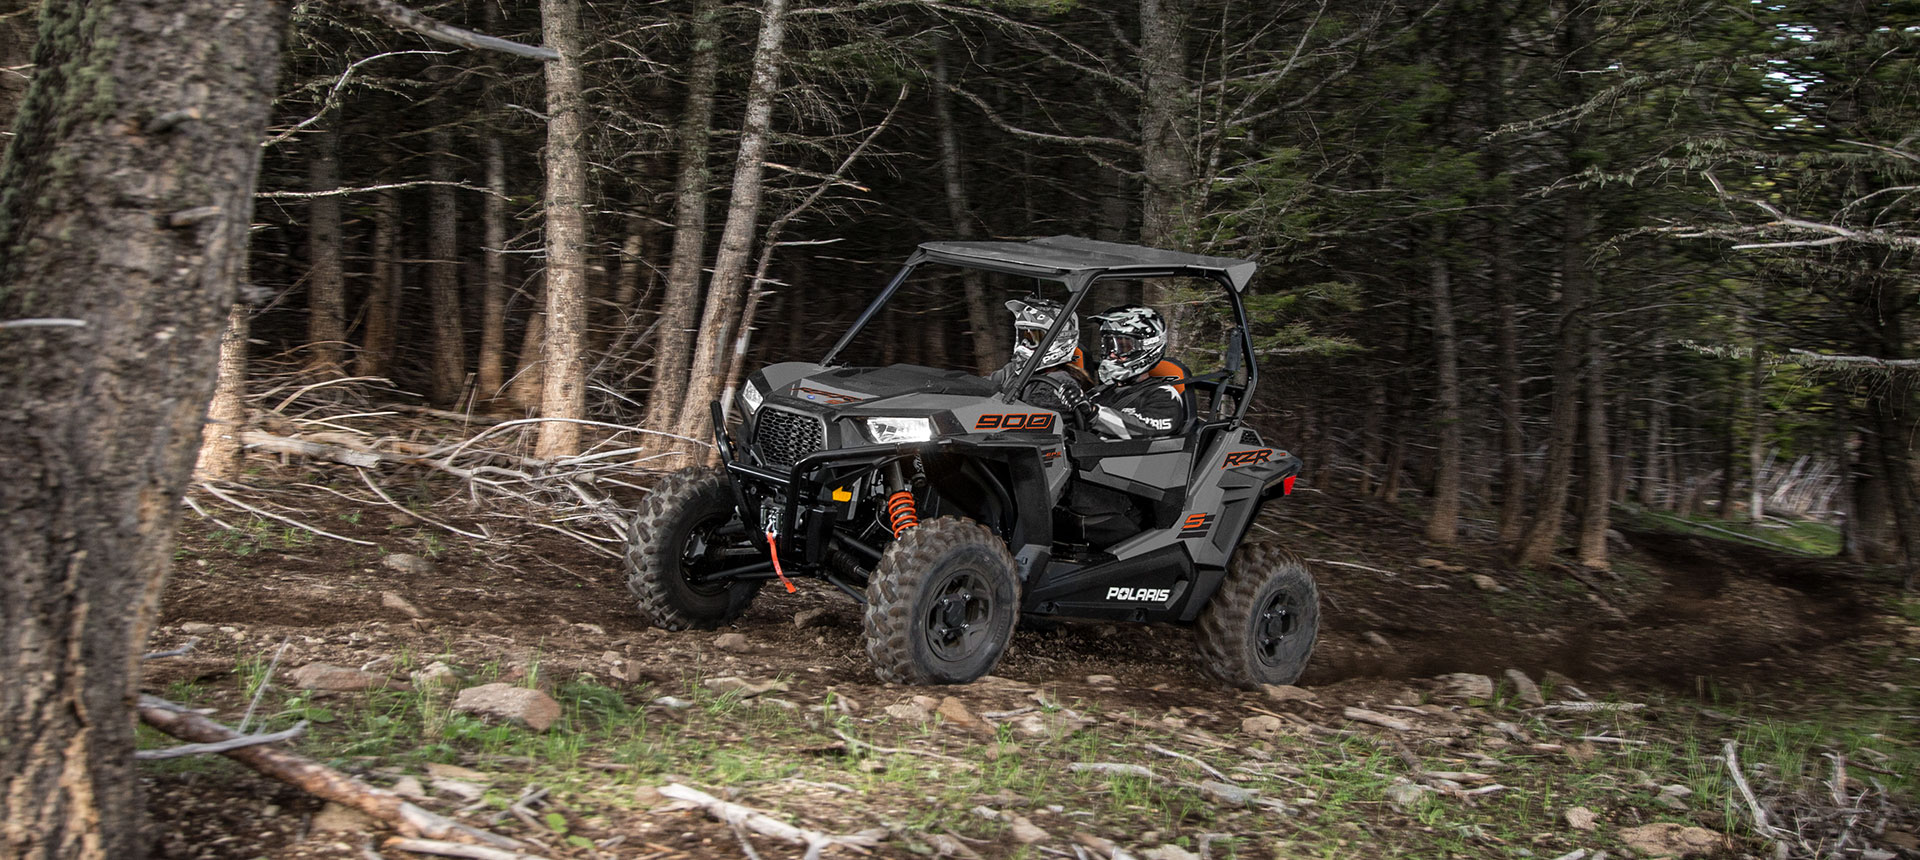 2019 Polaris RZR S 900 in Rapid City, South Dakota - Photo 9